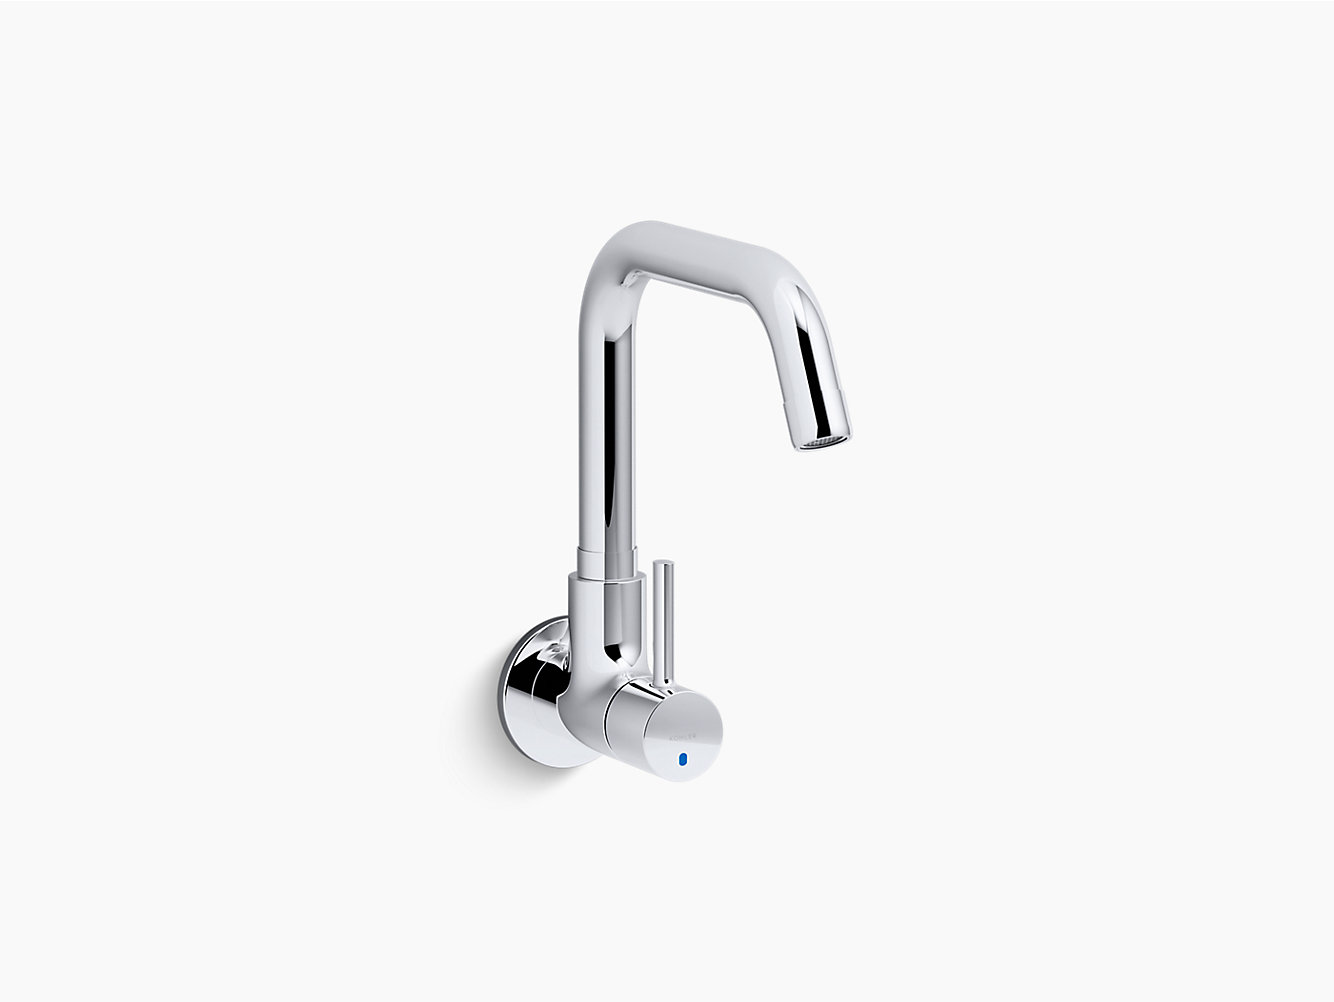 Cuff Single handle wall-mount cold-only kitchen faucet | K-37314IN-4 ...